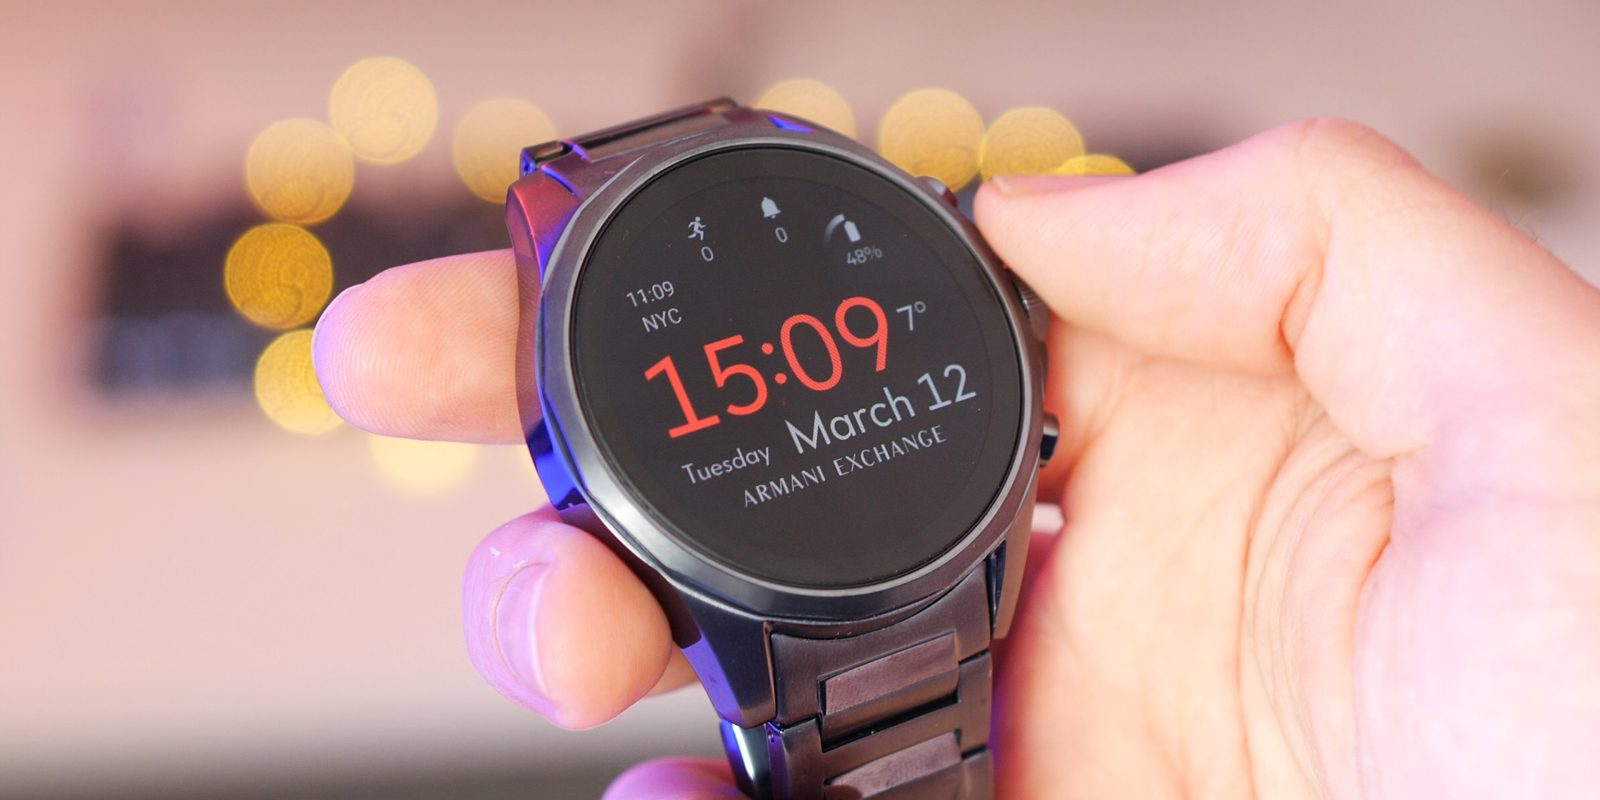 a741c230c Armani Exchange Connected review: A high-end Wear OS smartwatch that  somehow feels out of place [Video]